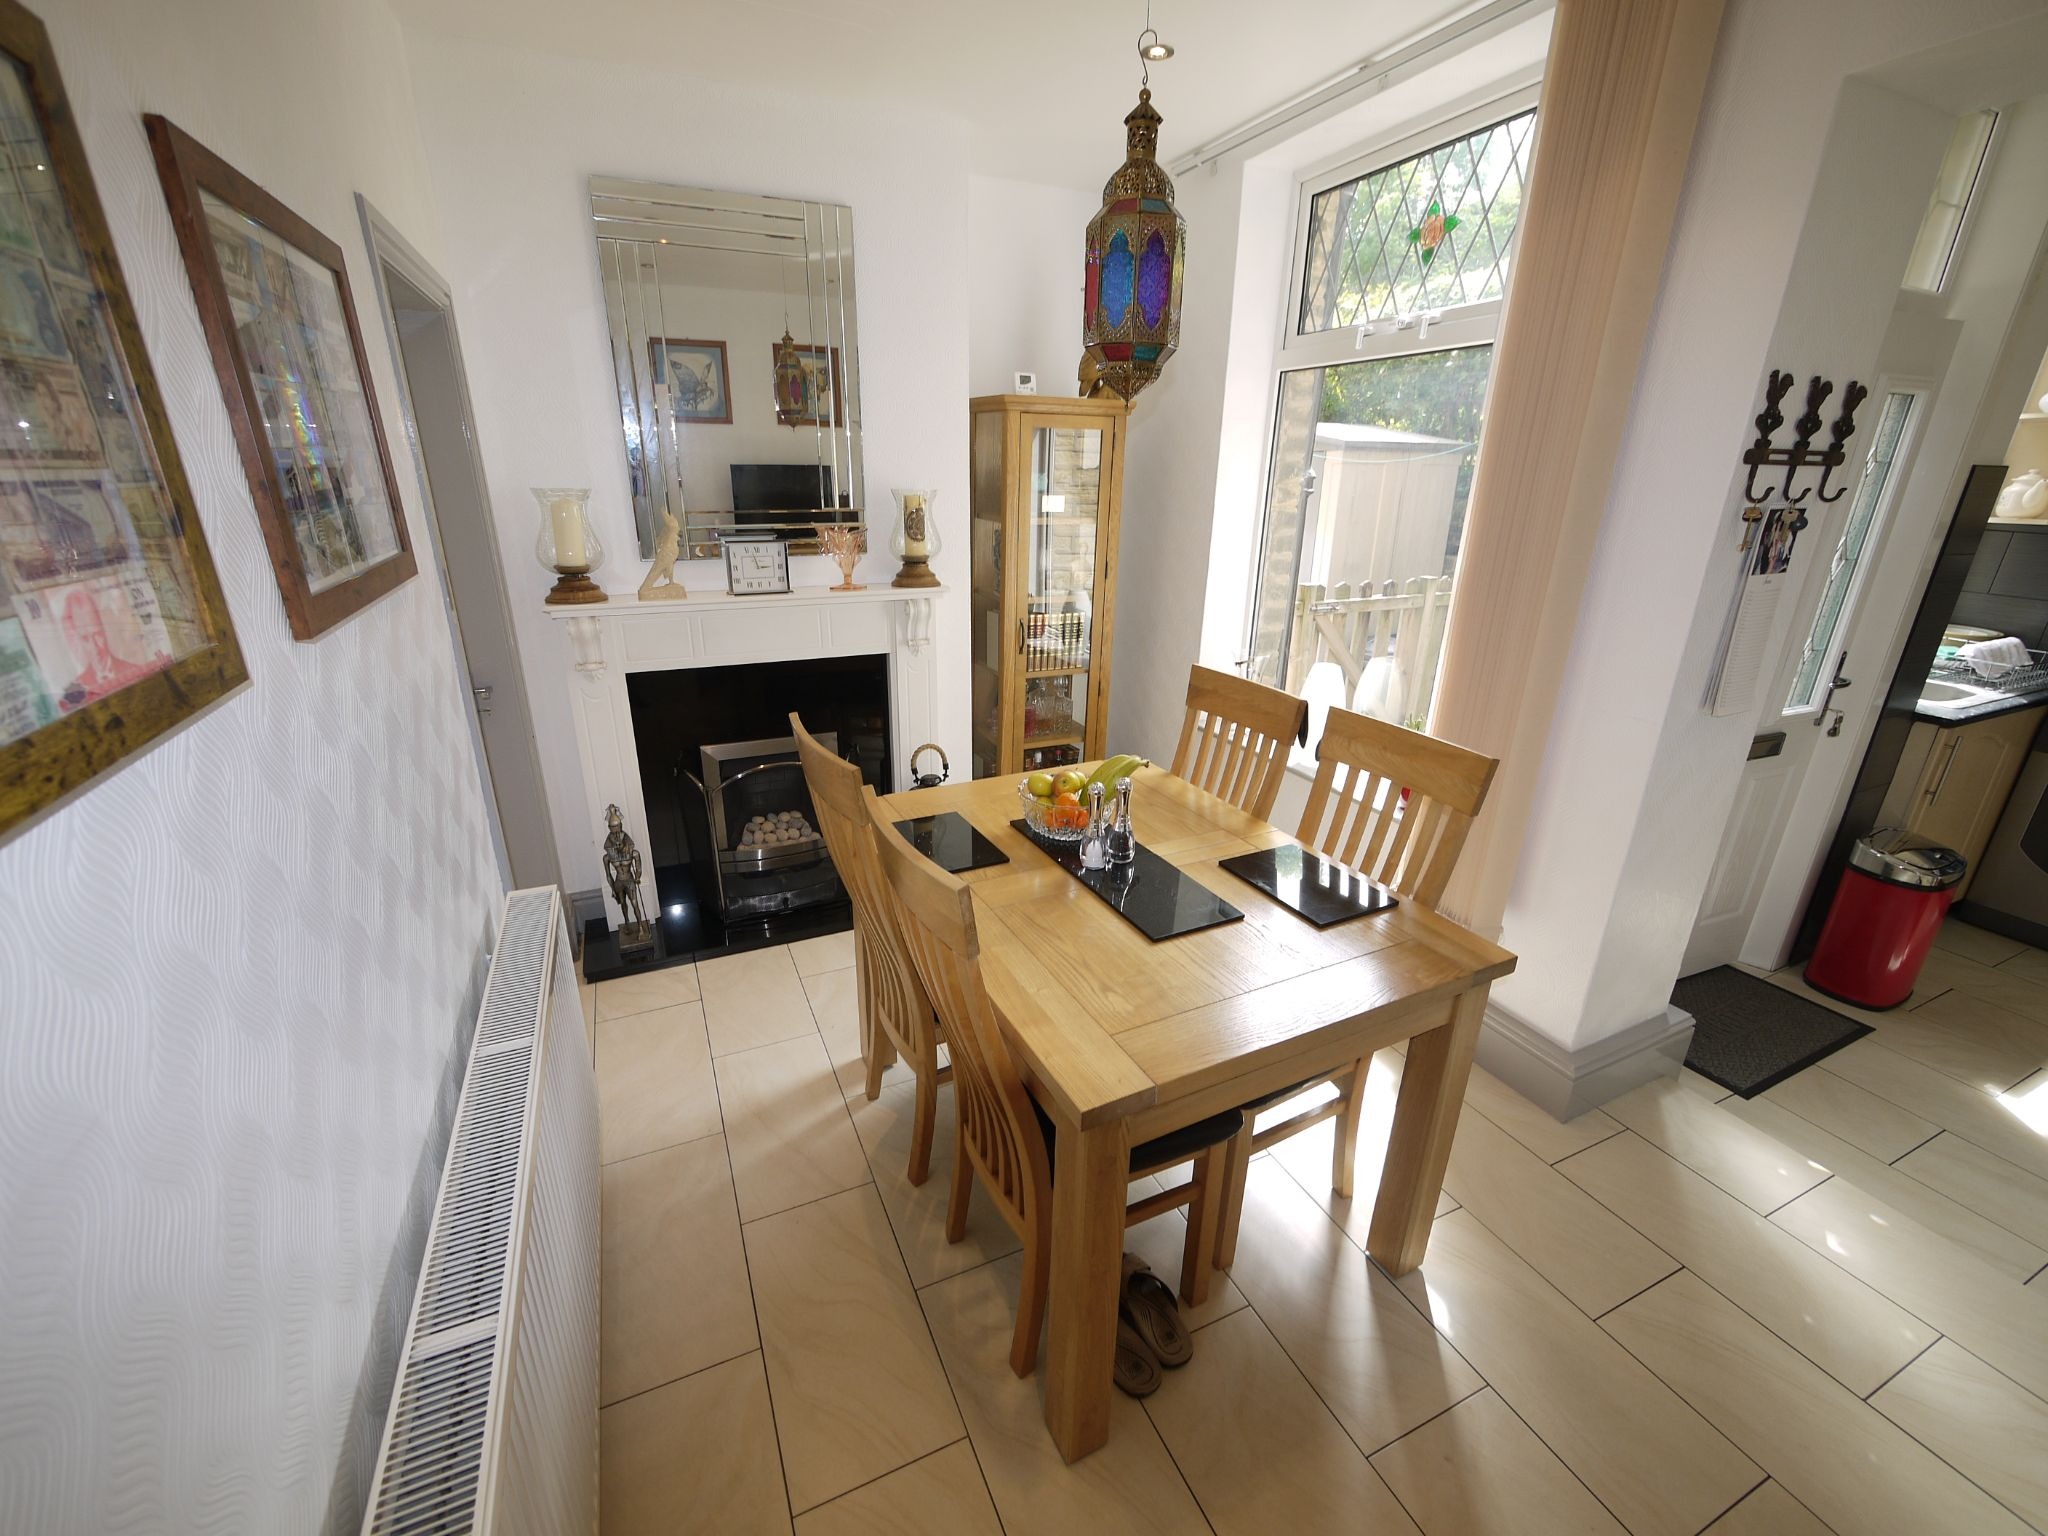 2 bedroom end terraced house SSTC in Brighouse - Dining room.